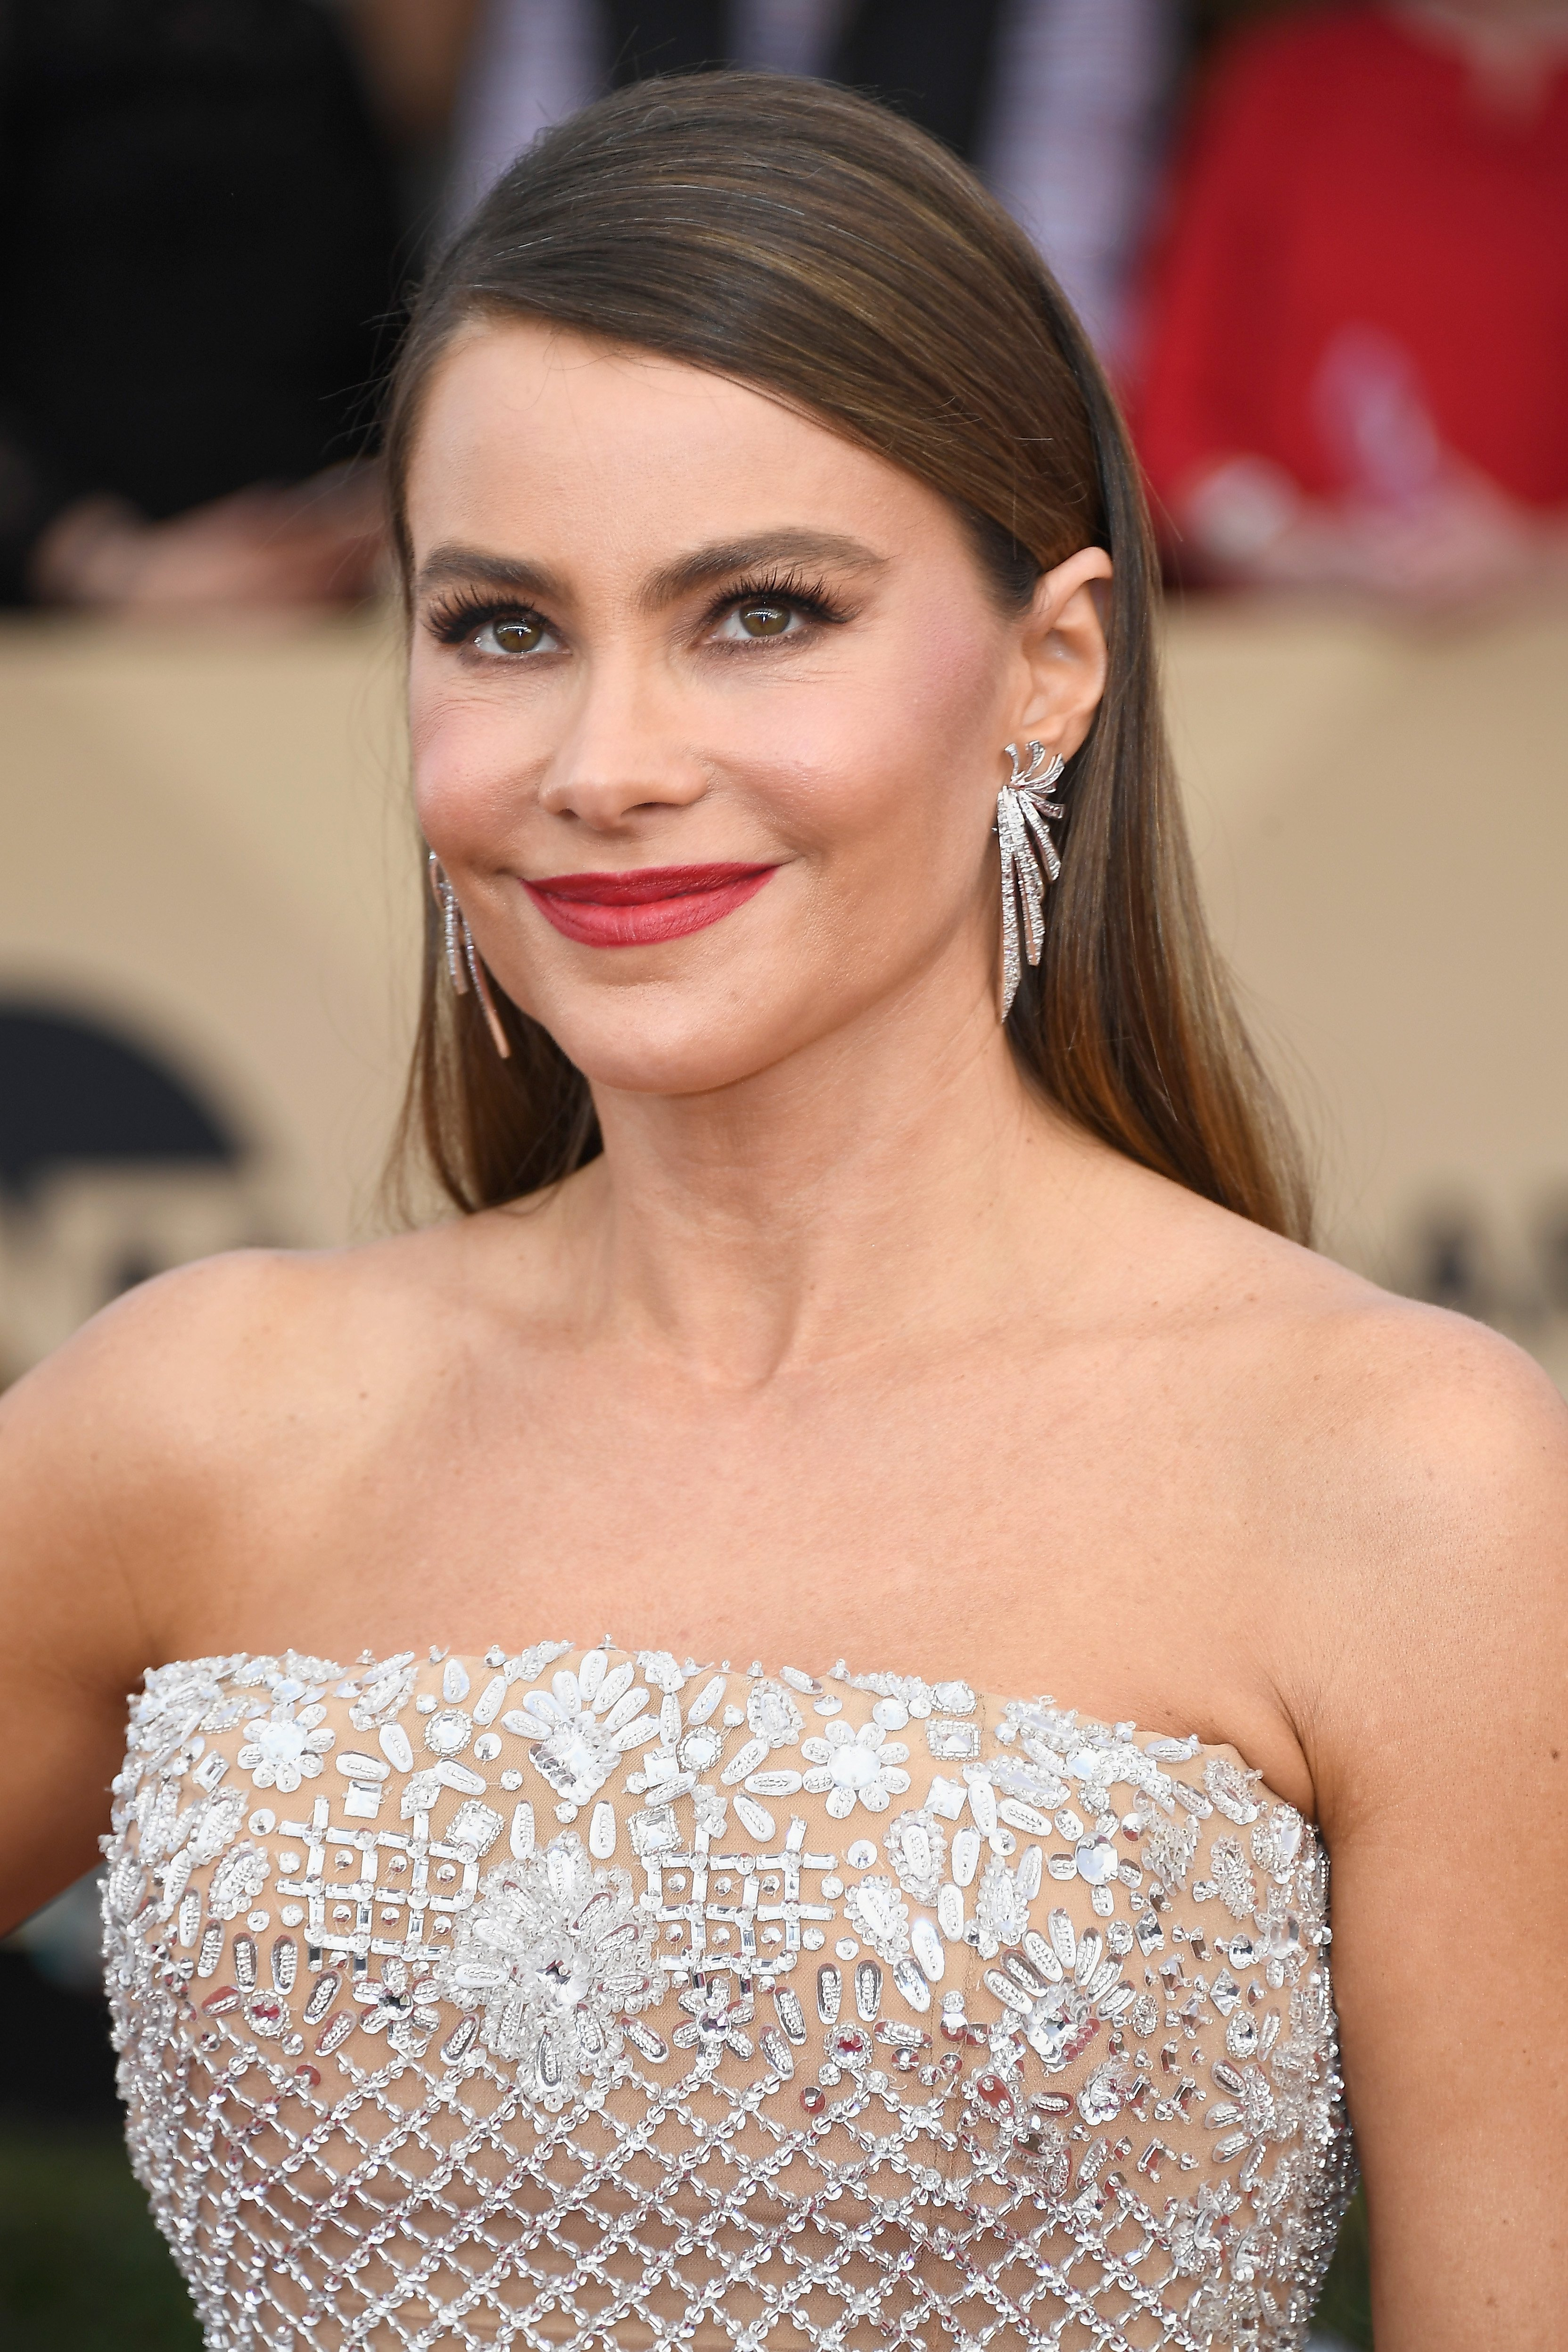 Sofia Vergara at The 23rd Annual Screen Actors Guild Awards on Jan. 29, 2017 in California | Photo: Getty Images